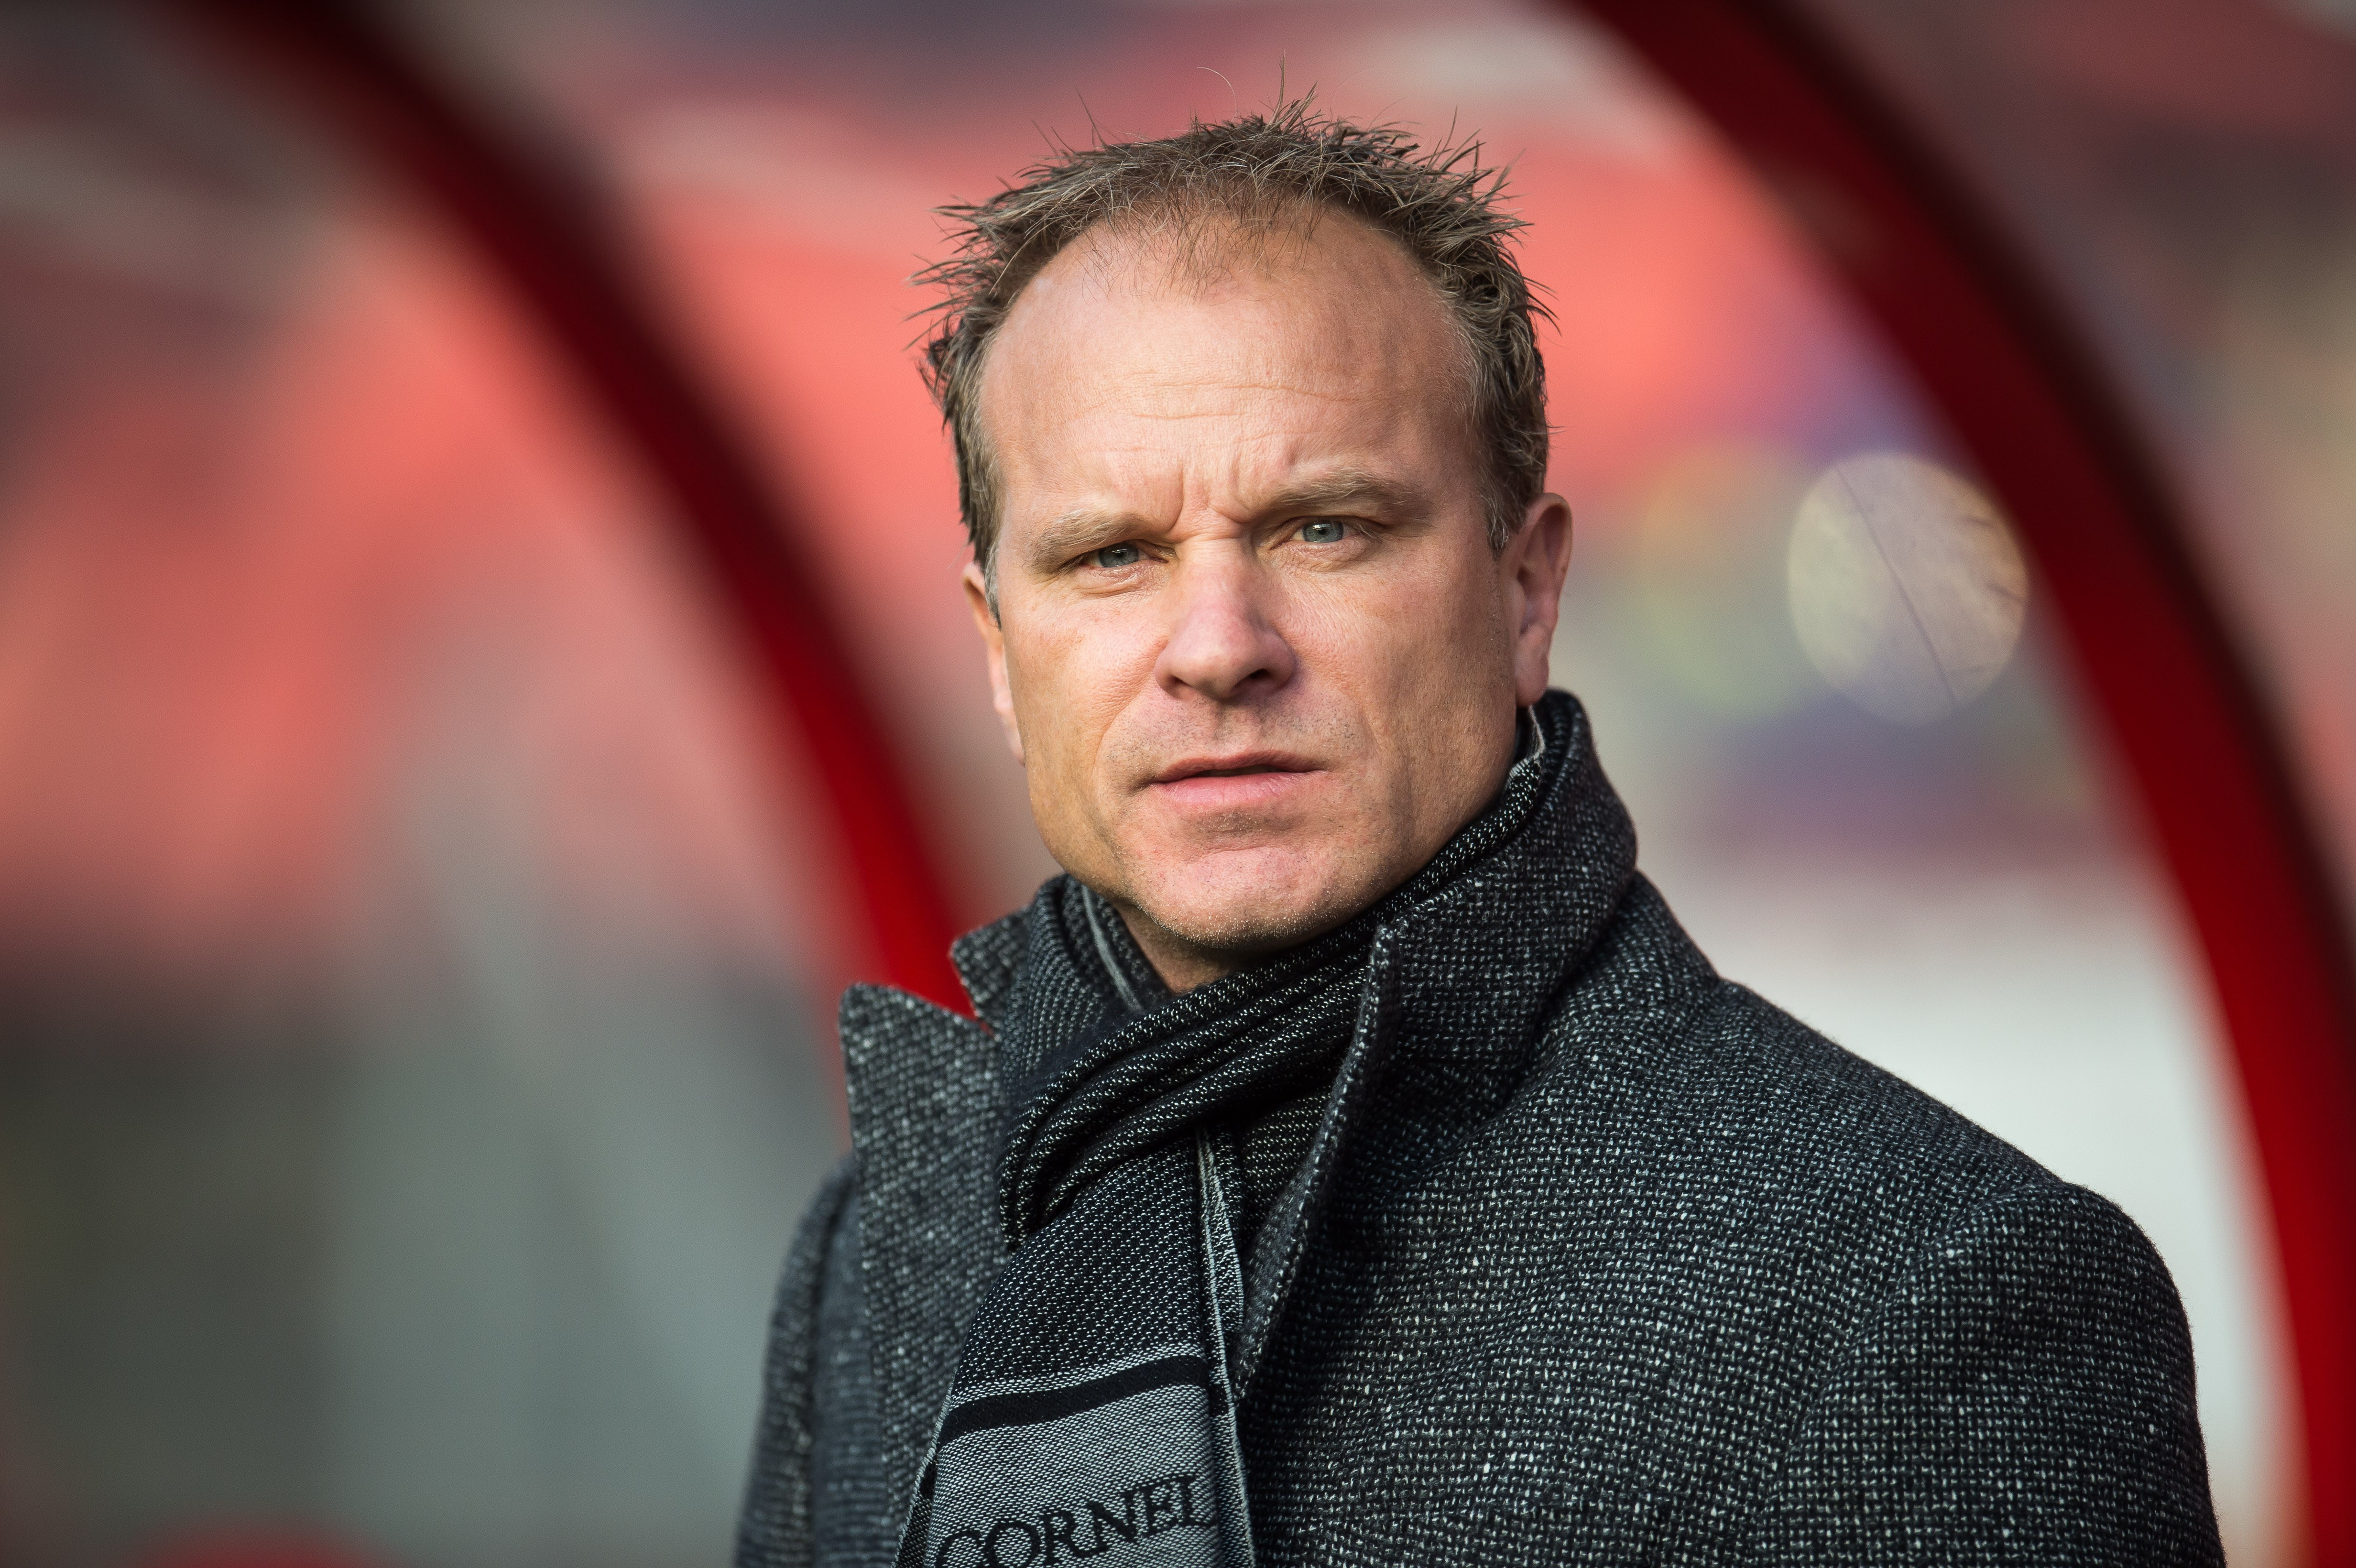 Dennis Bergkamp made bookmaker's favourite to replace Arsene Wenger as Arsenal manager